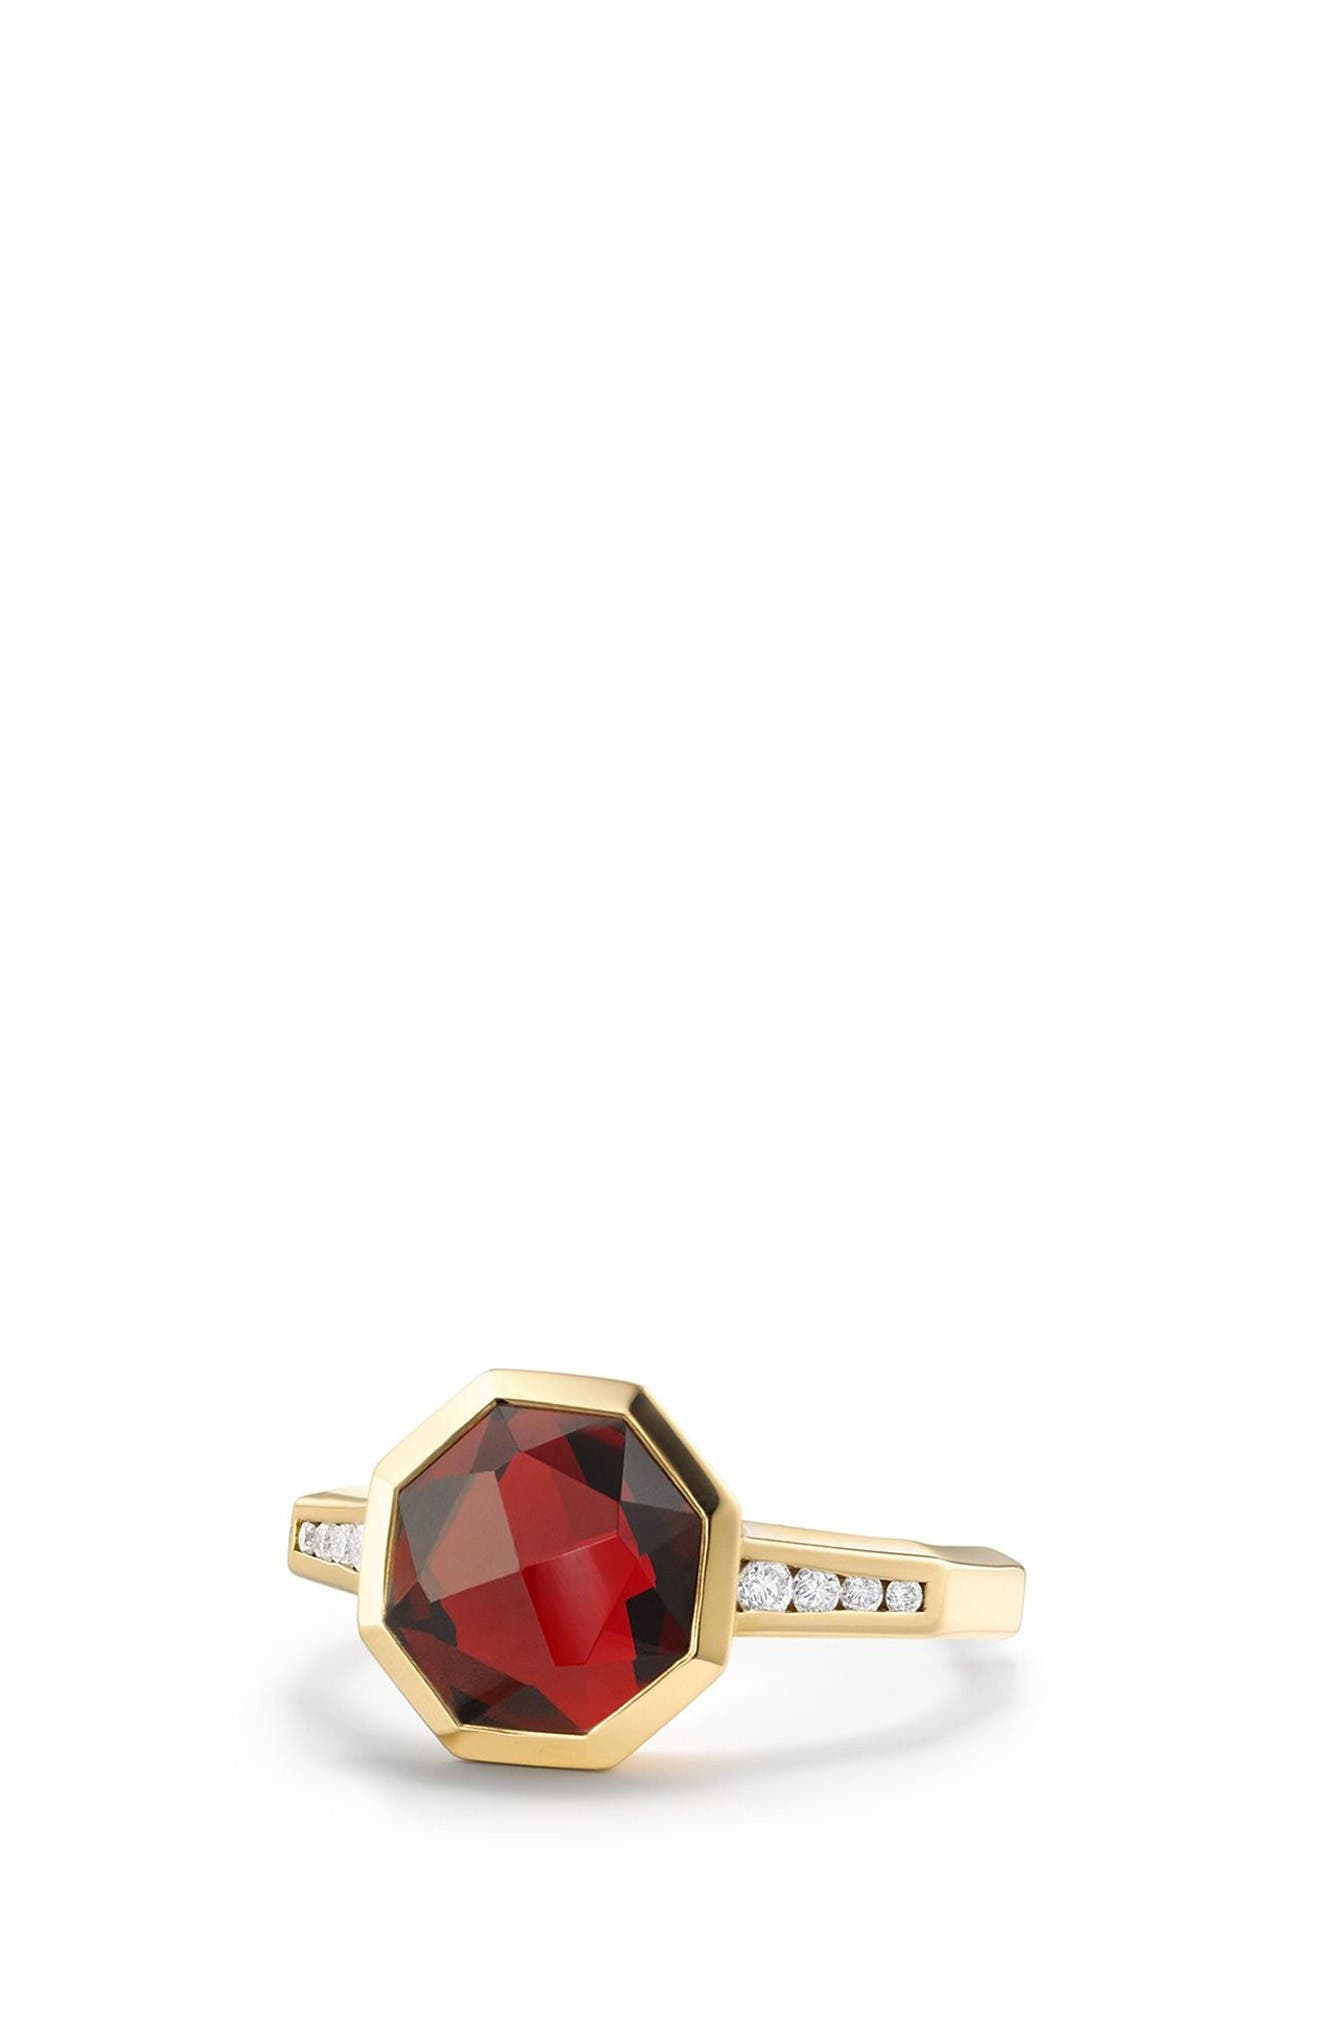 DAVID YURMAN Guilin Octagon Ring with Diamonds in